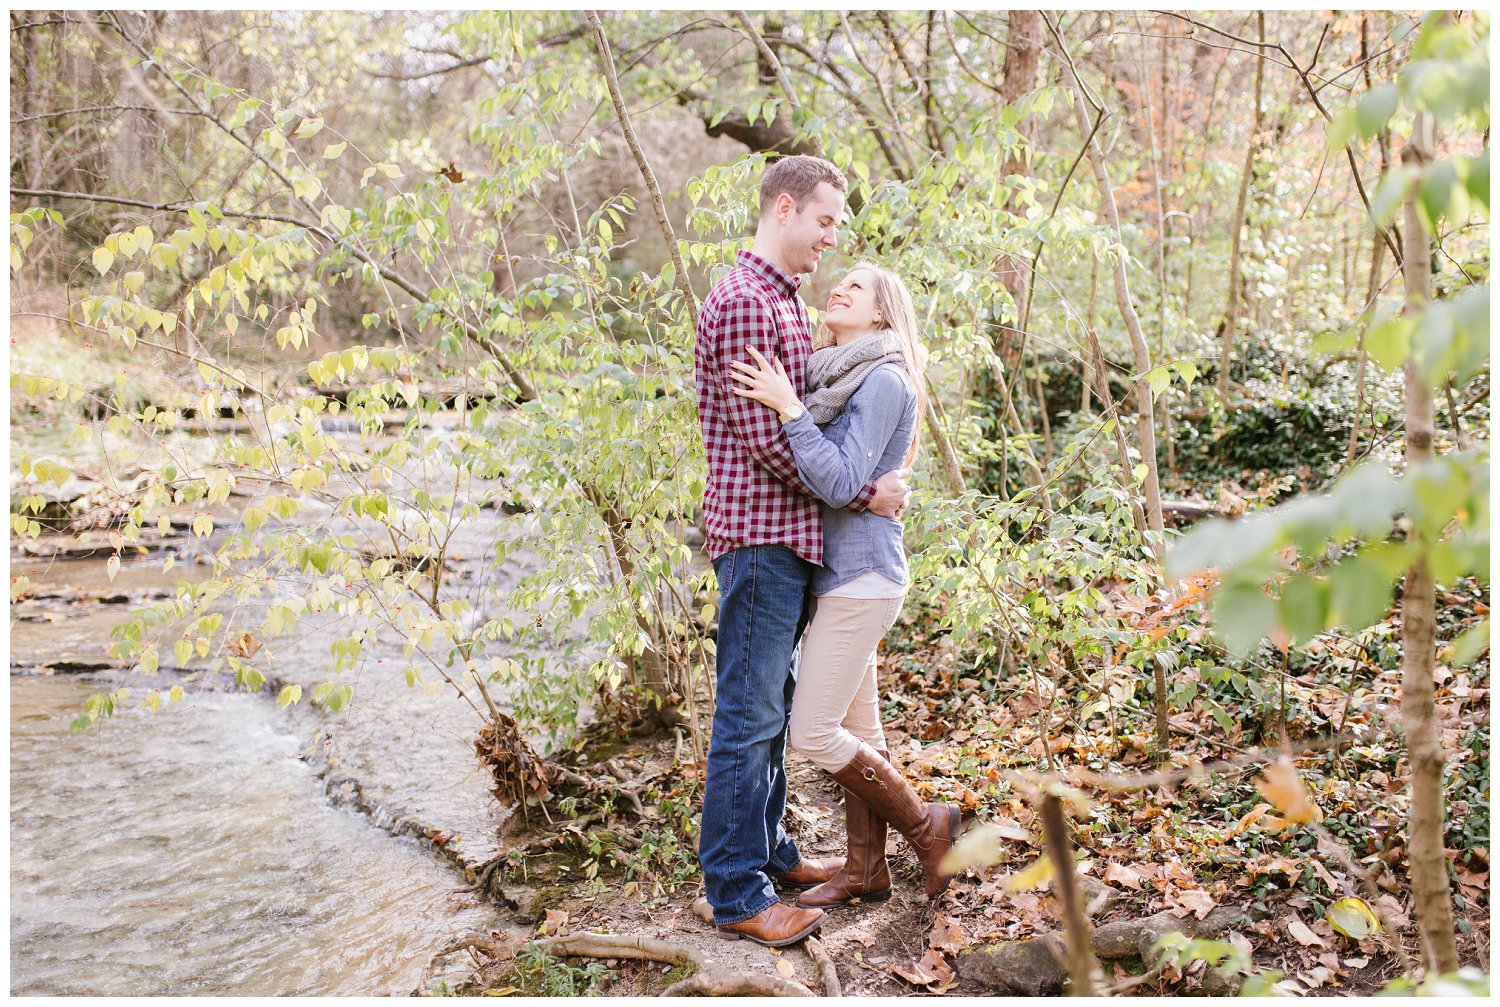 laina-matt-prospect-kentucky-engagement-session_0006.jpg